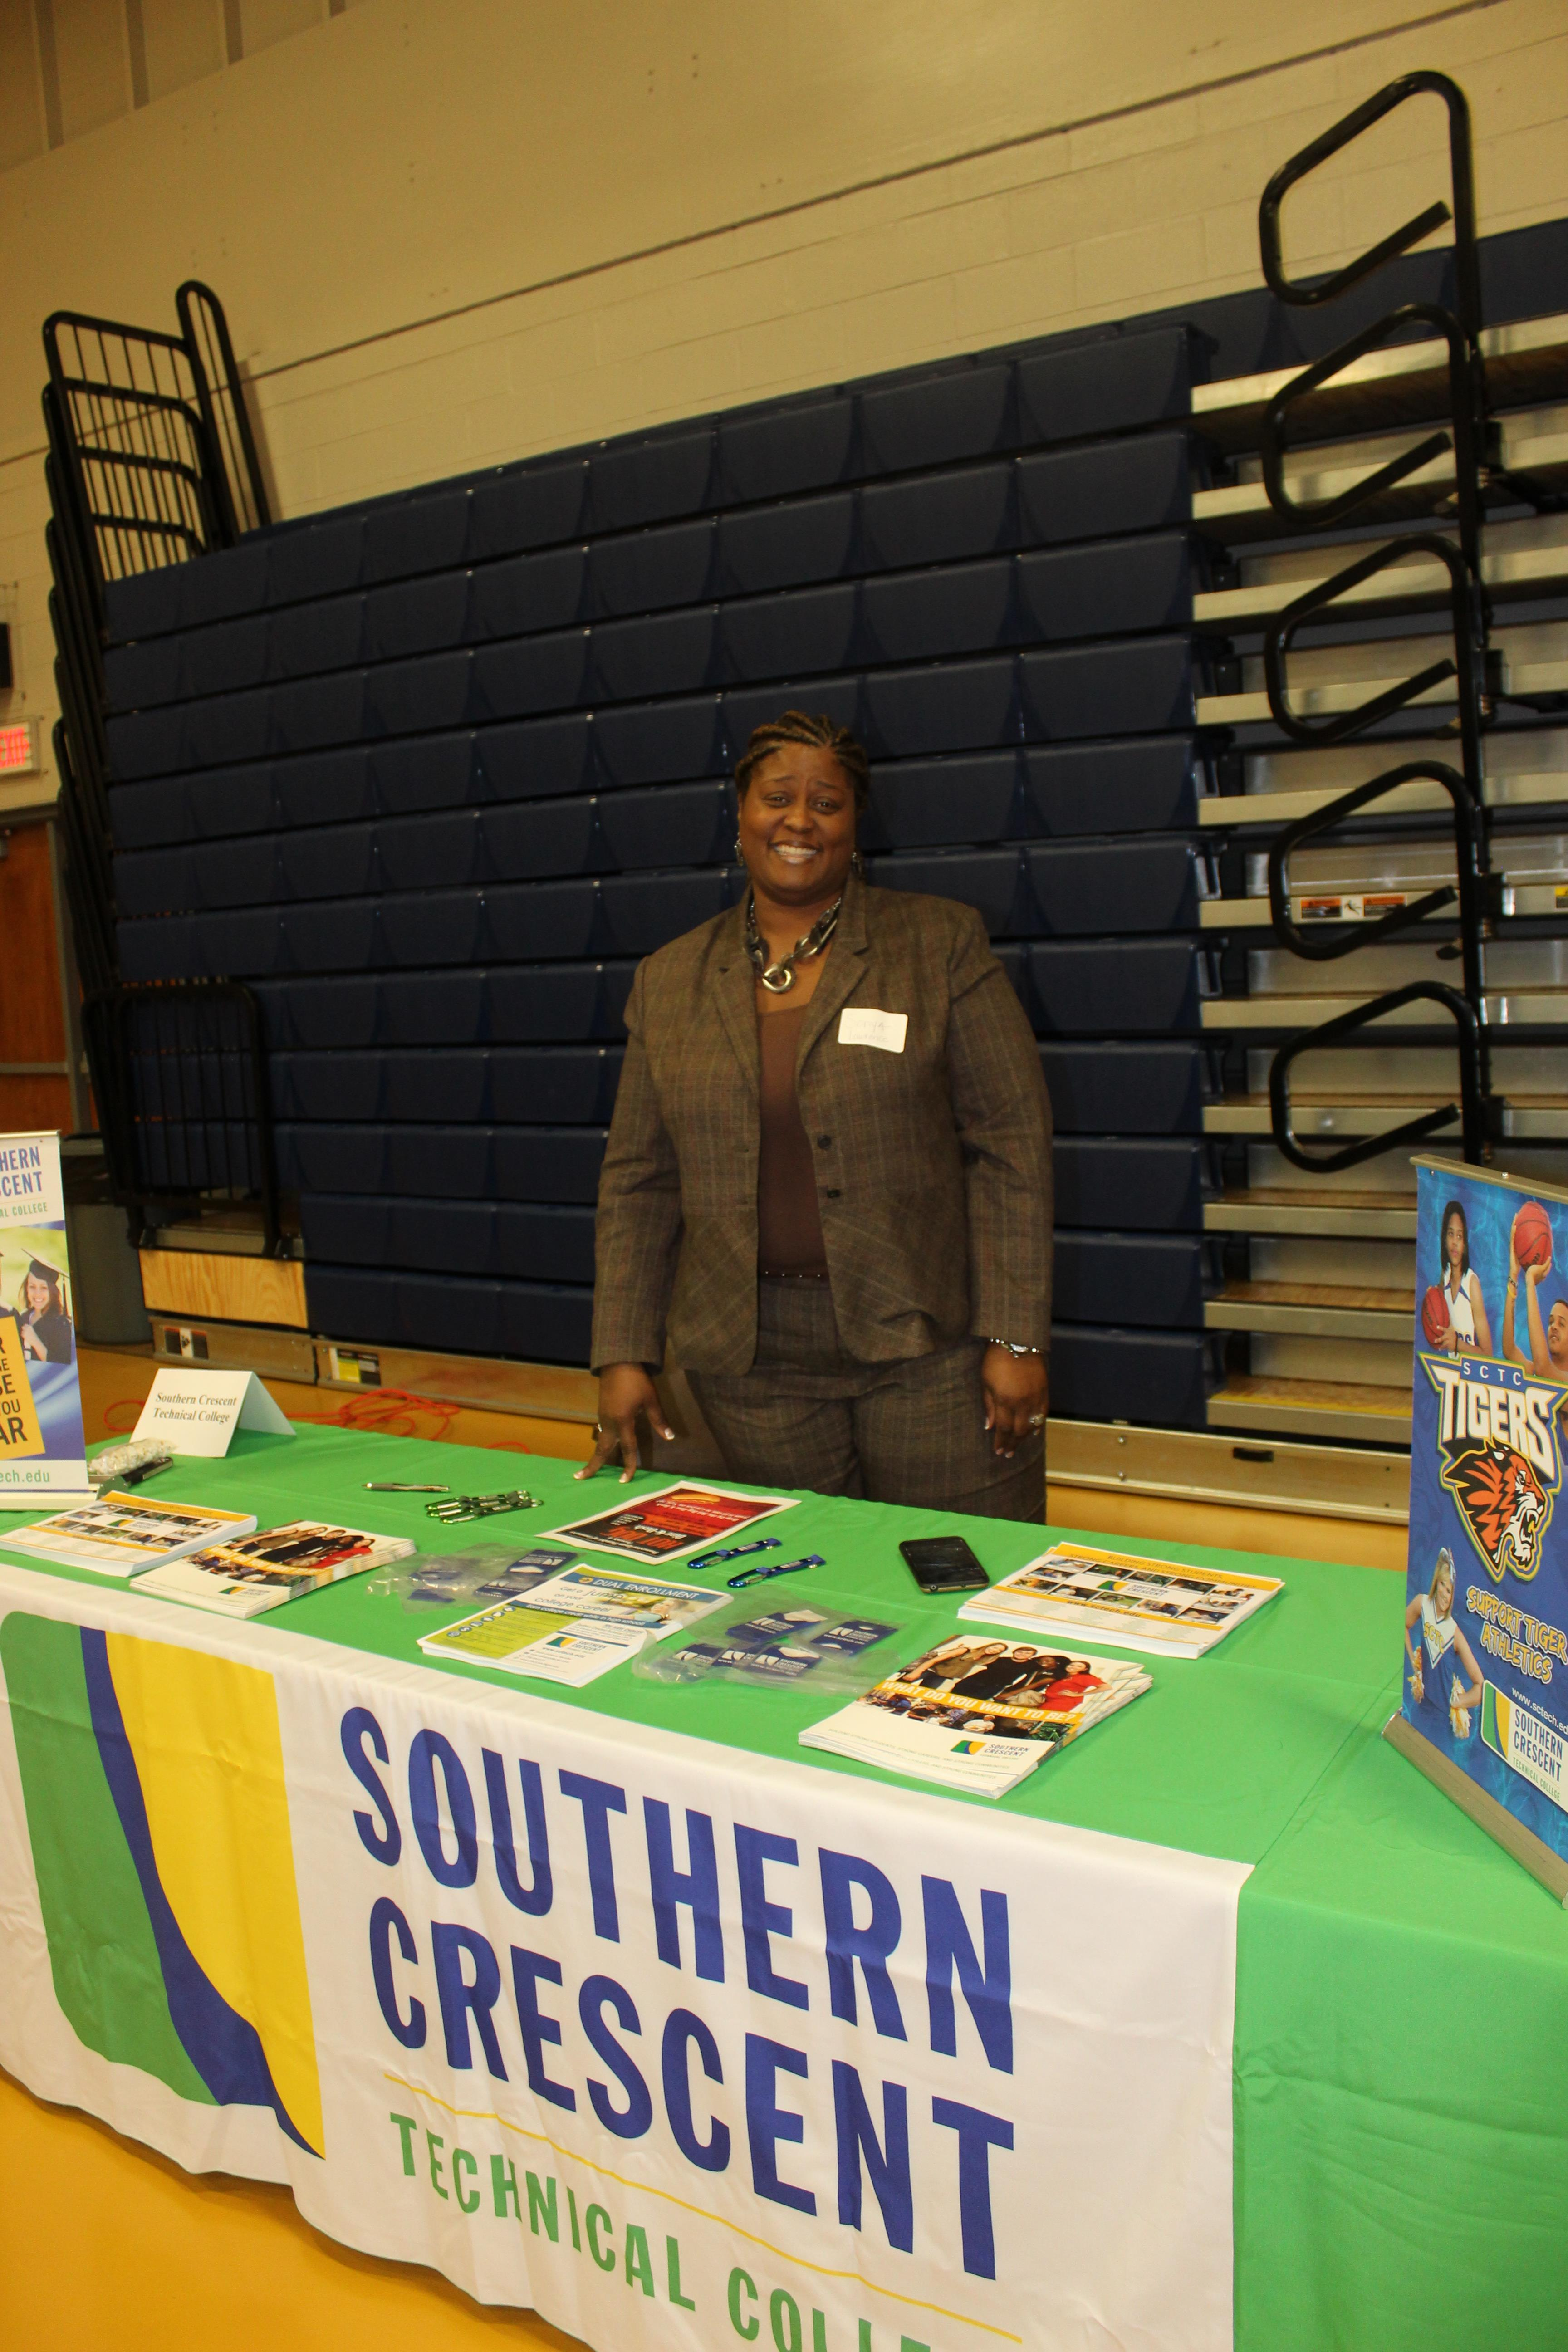 SCTC-College-other-table.JPG